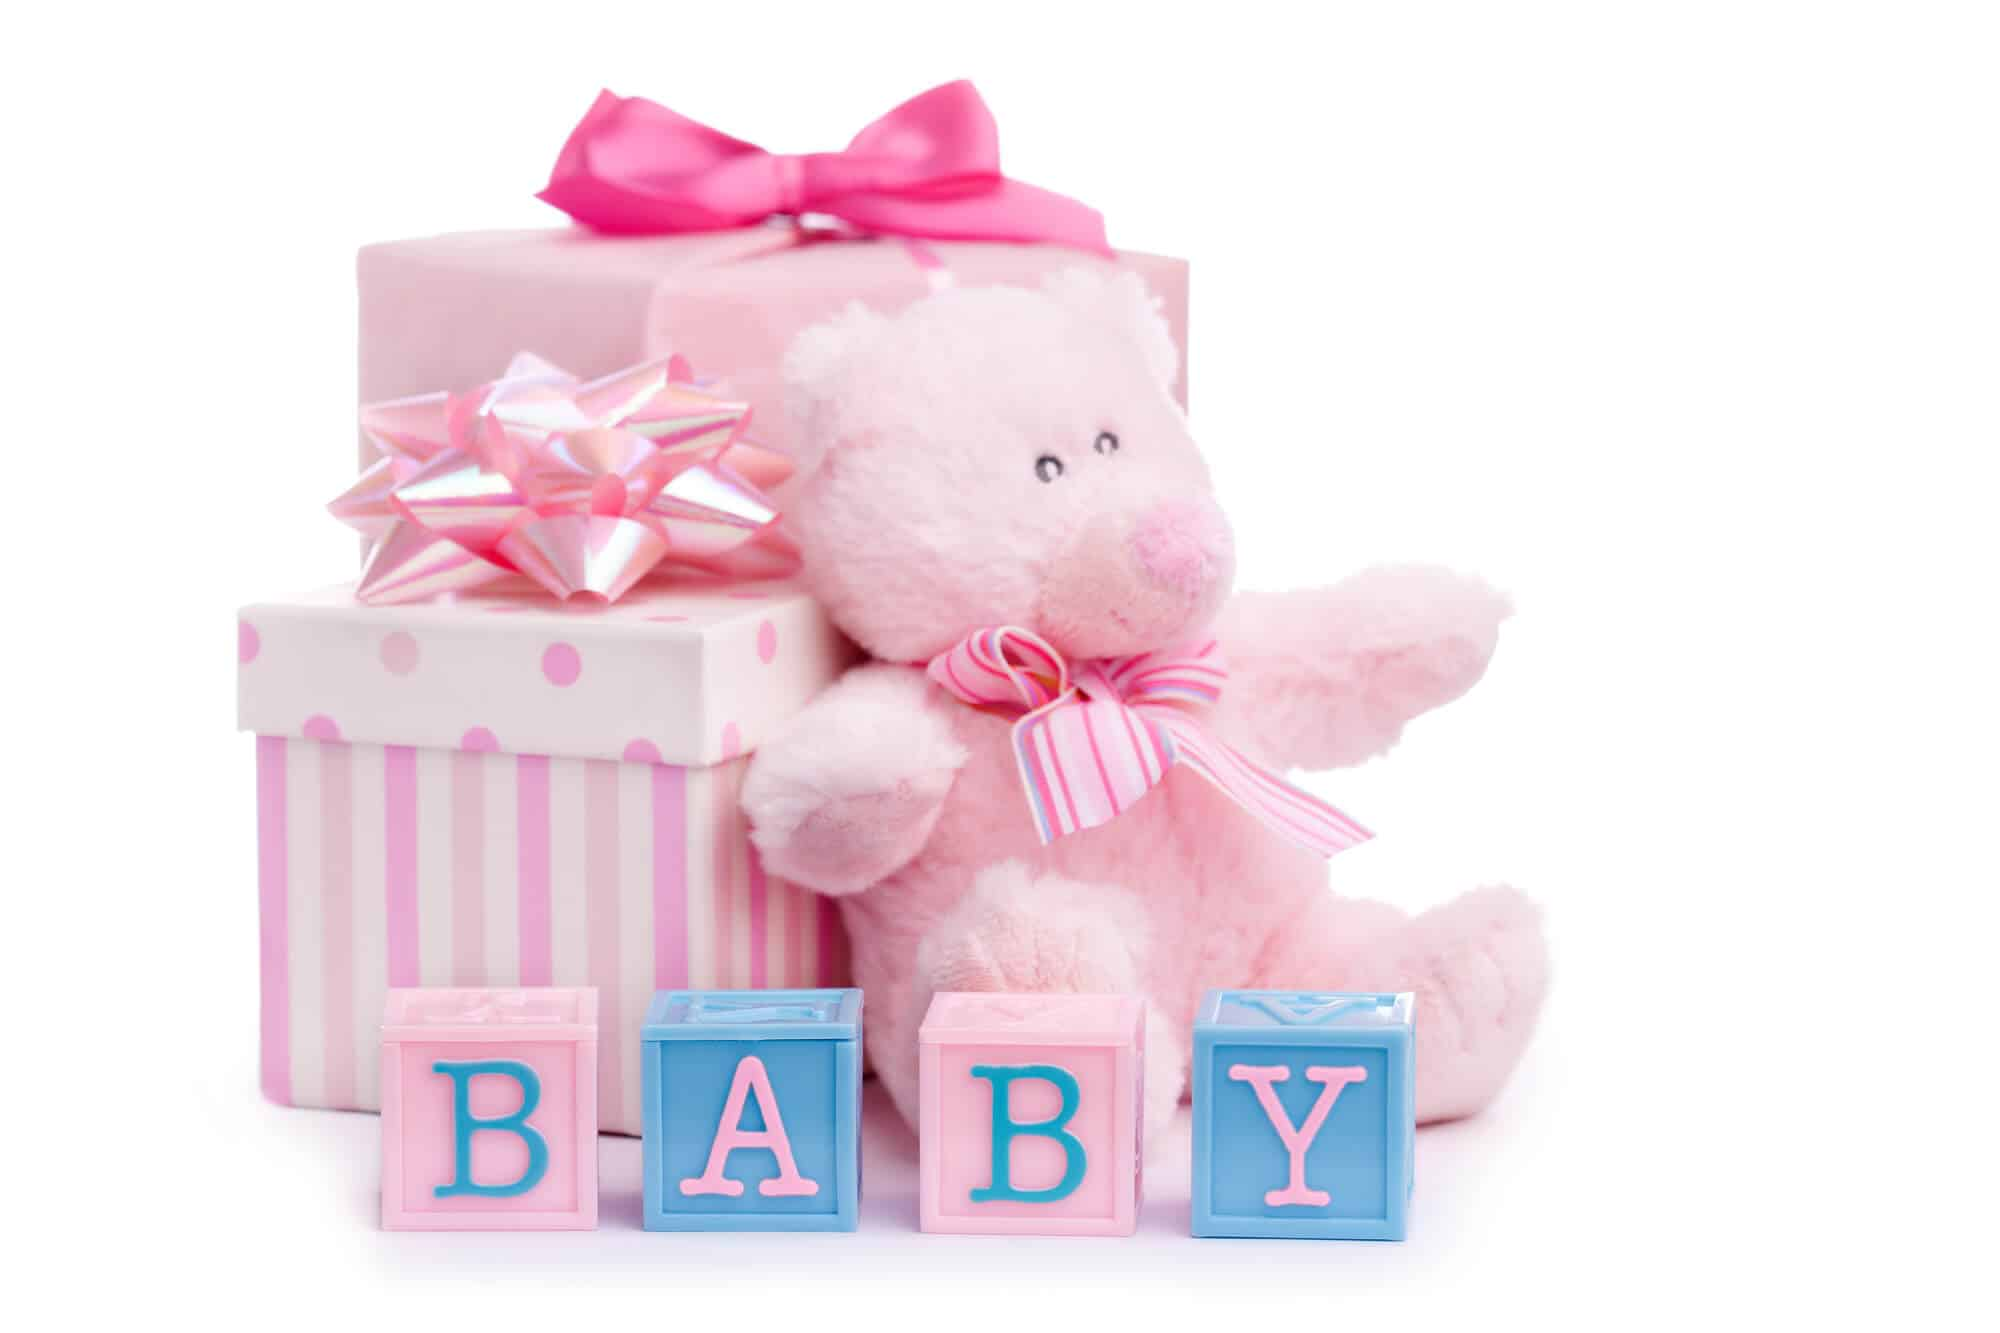 BABY sign with pink presents and a pink bear